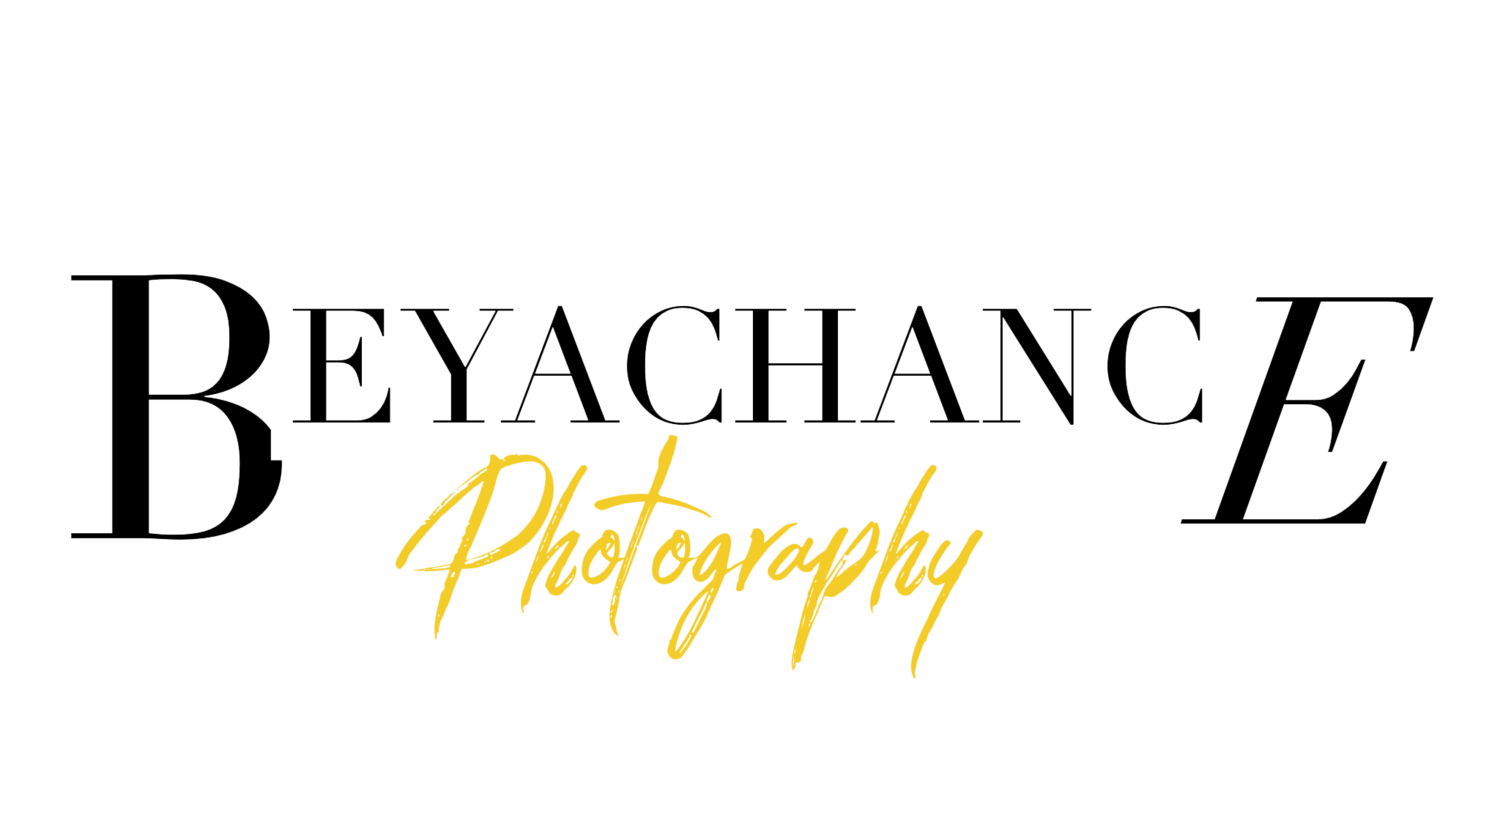 Beyachance Photography